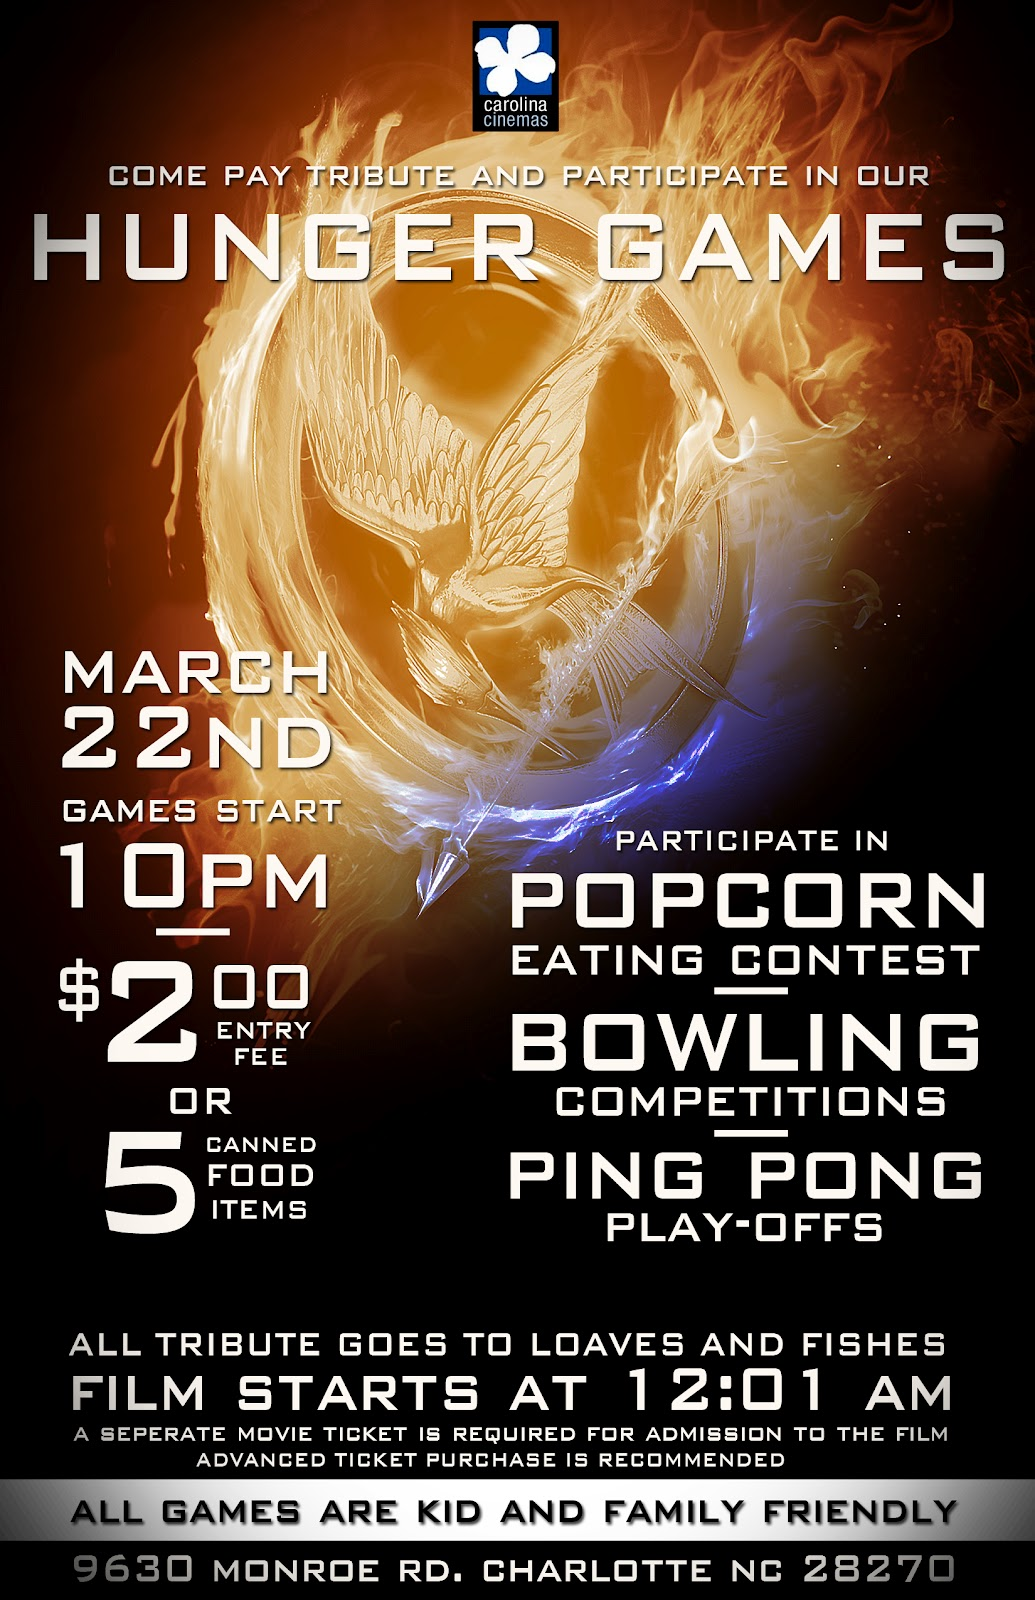 39 the hunger games 39 buzz see 39 hunger games 39 fight hunger for Loaves and fishes charlotte nc